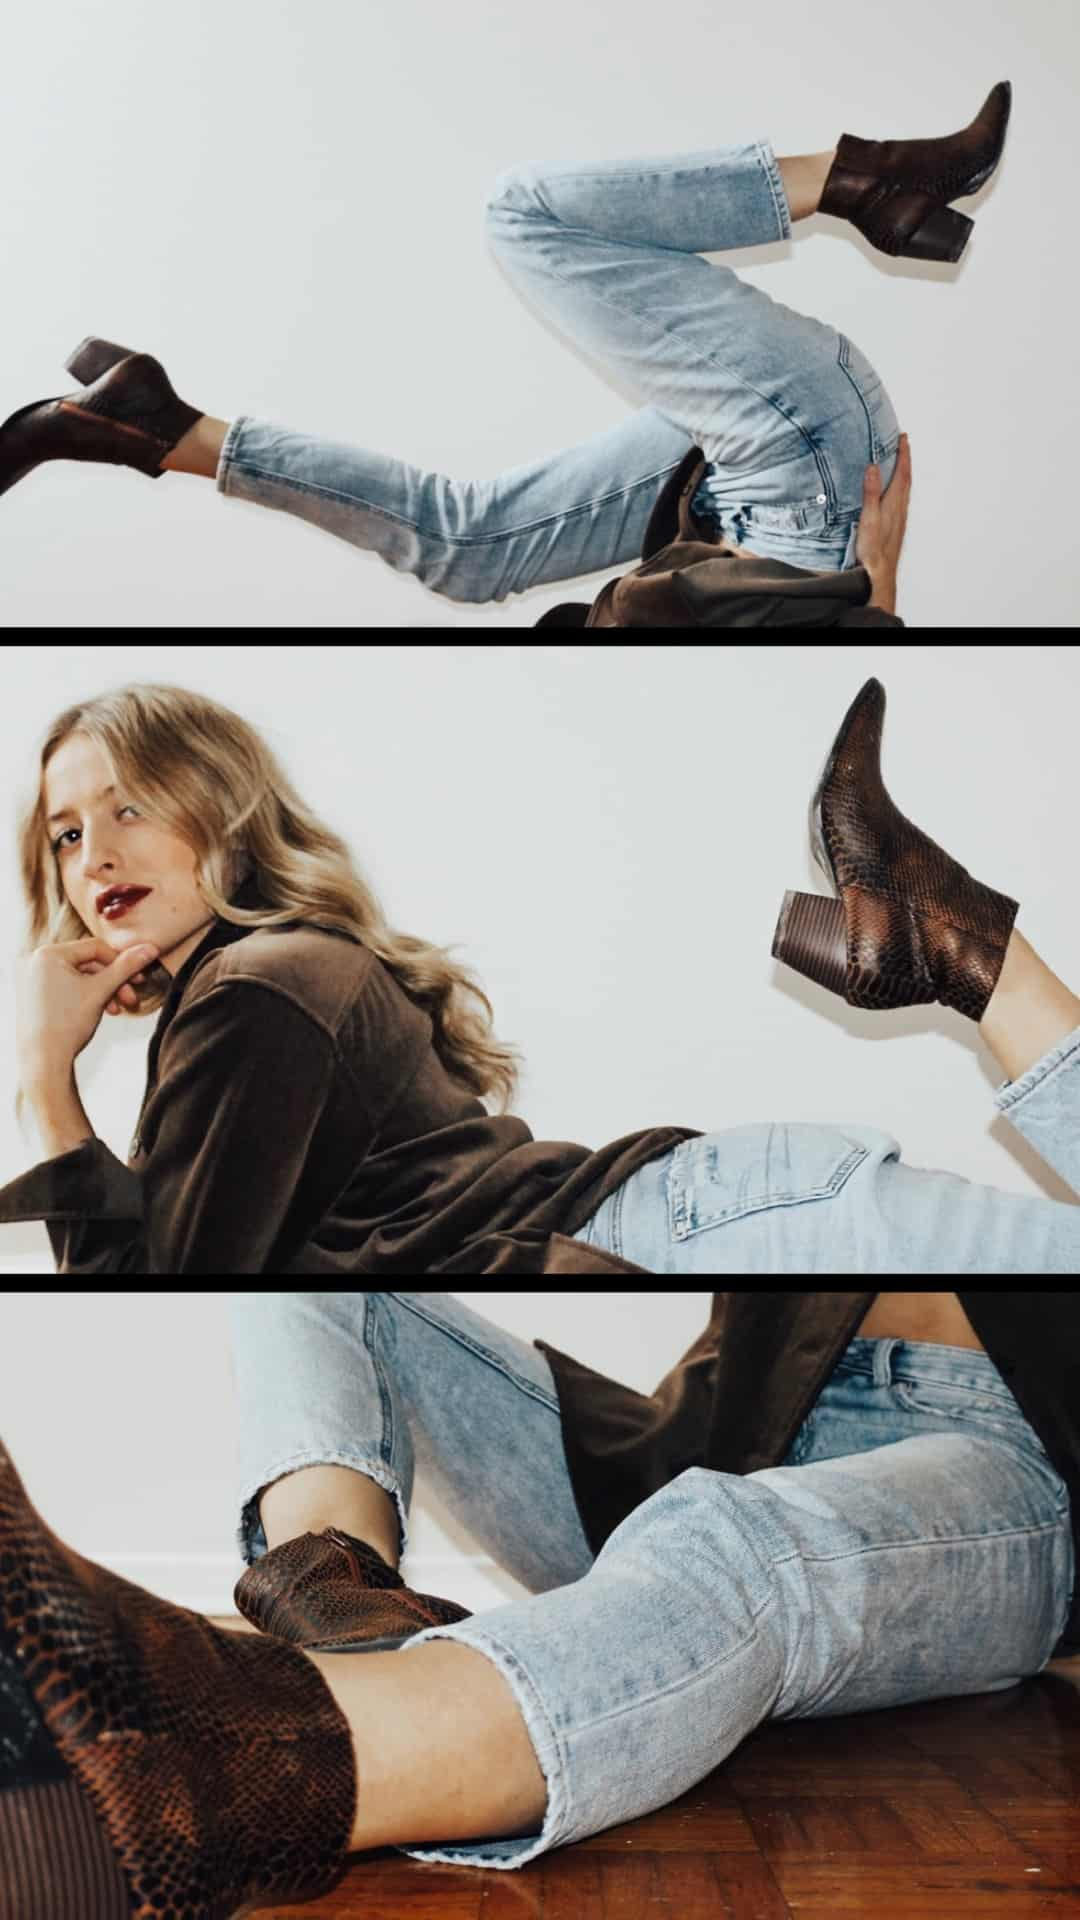 Matisse Footwear - My current obsession for women's ankle boots. The Going West Ankle Boot in Brown Snake..part of Coconuts by Matisse, is my winter go-to!